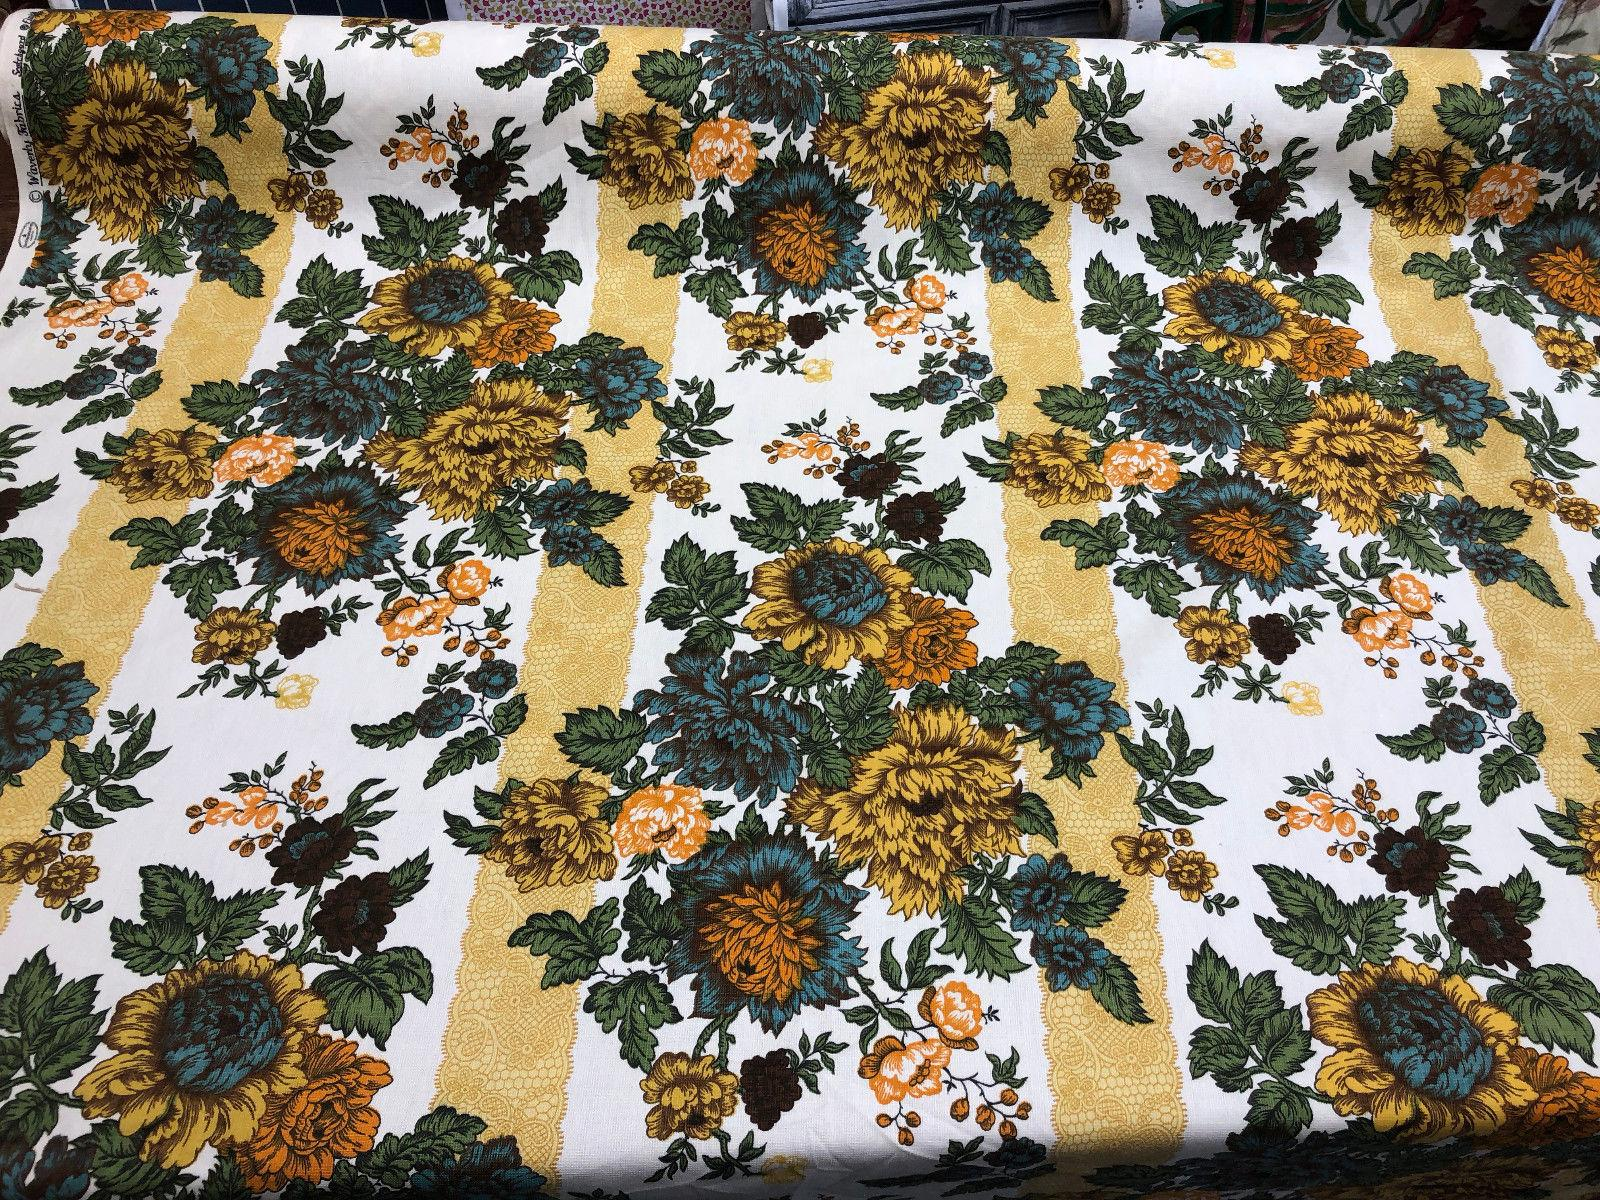 Vintage Floral Fabric - The Villa on Mount Pleasant |Vintage Floral Fabric